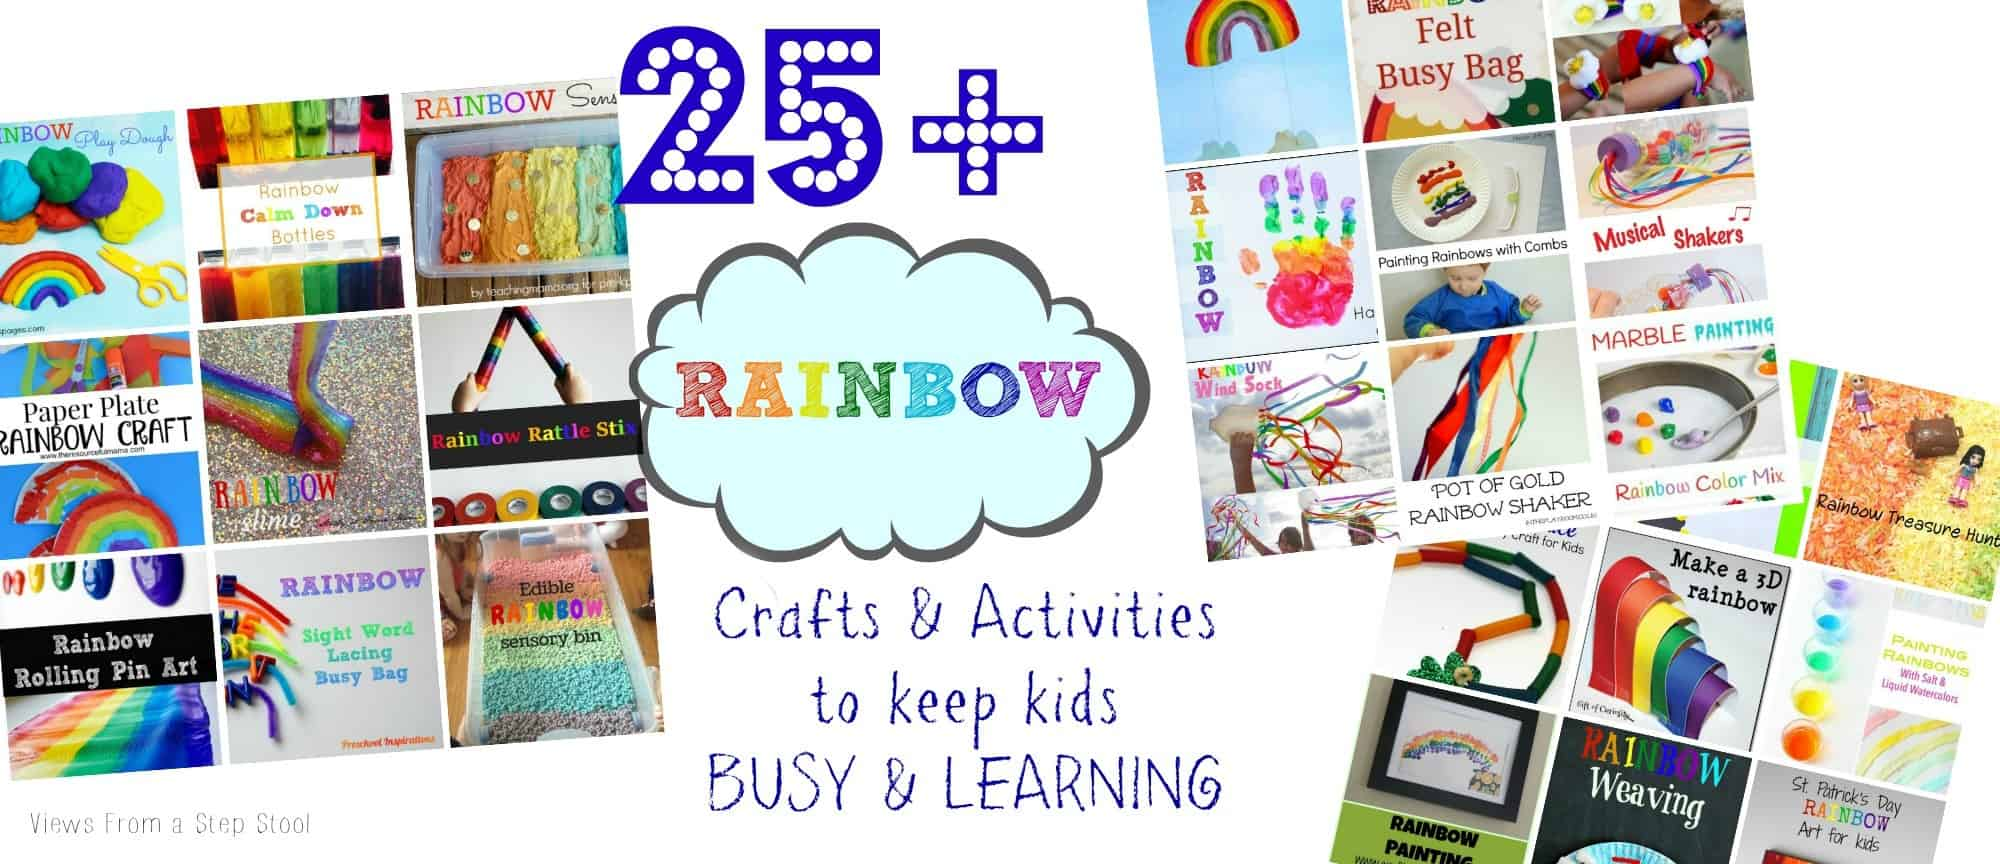 25+ Rainbow Crafts and Activities for Learning and Fun